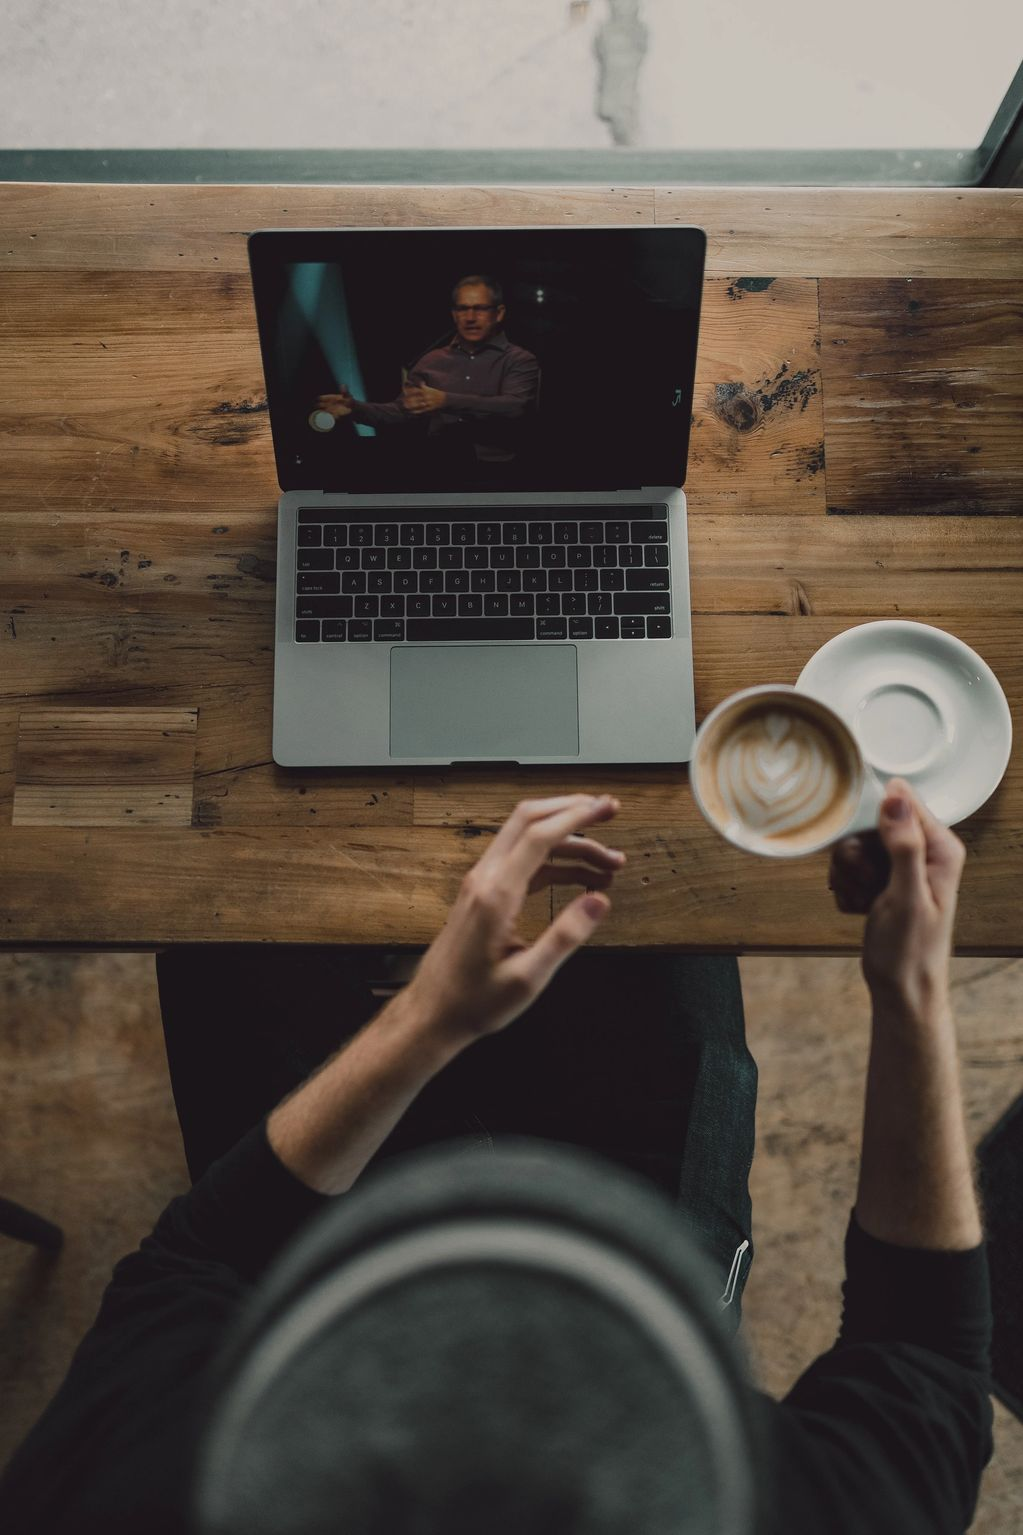 Person holding cup of latte while facing MacBook nathan-ansell-JvbNsRCXXic-unsplash